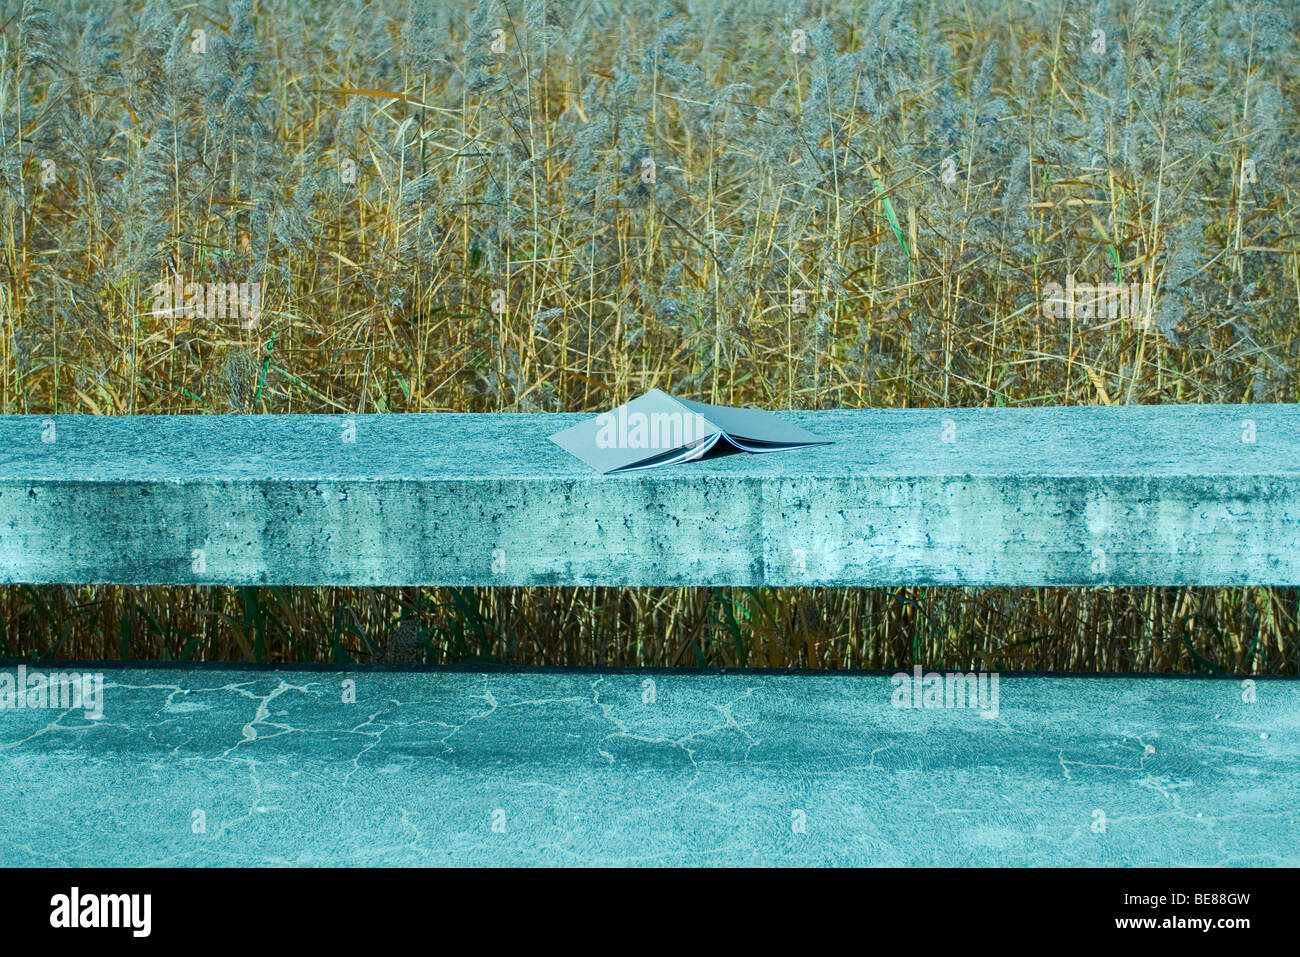 Open book placed face down on concrete ledge, grassy field in background - Stock Image